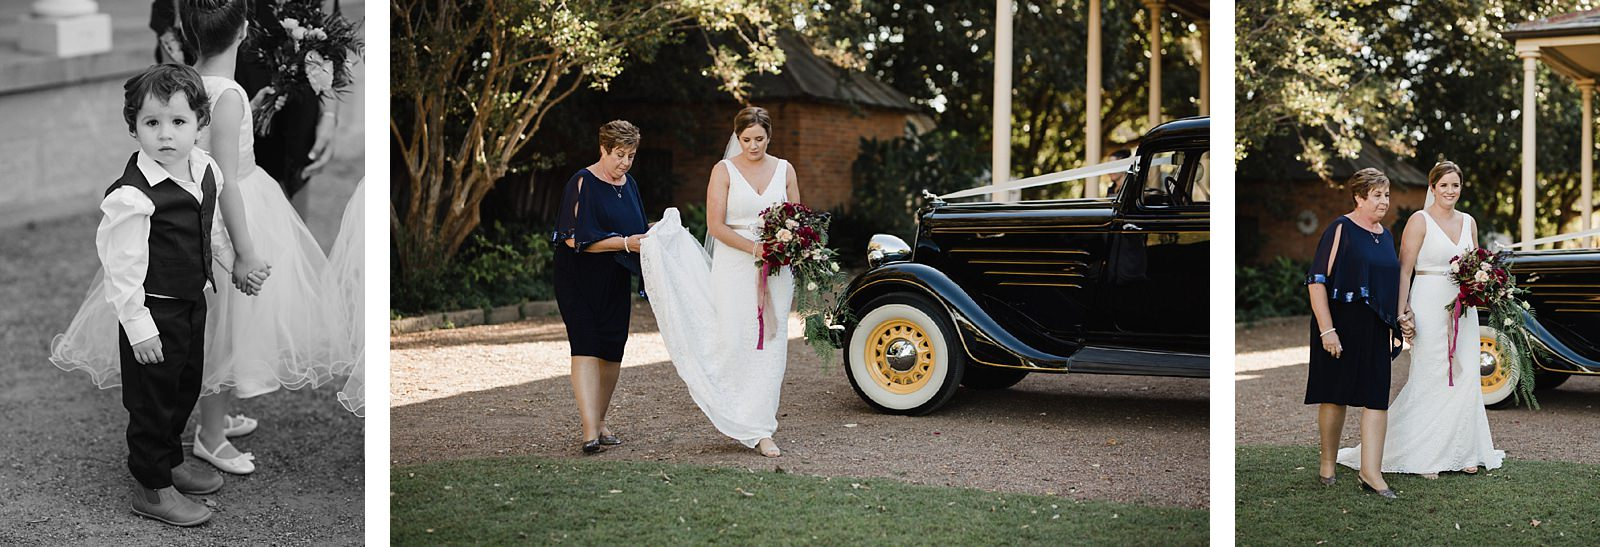 051Hunter Valley Wedding Photographers Bryce Noone Photography at Tocal Homestead Wedding Venue.jpg